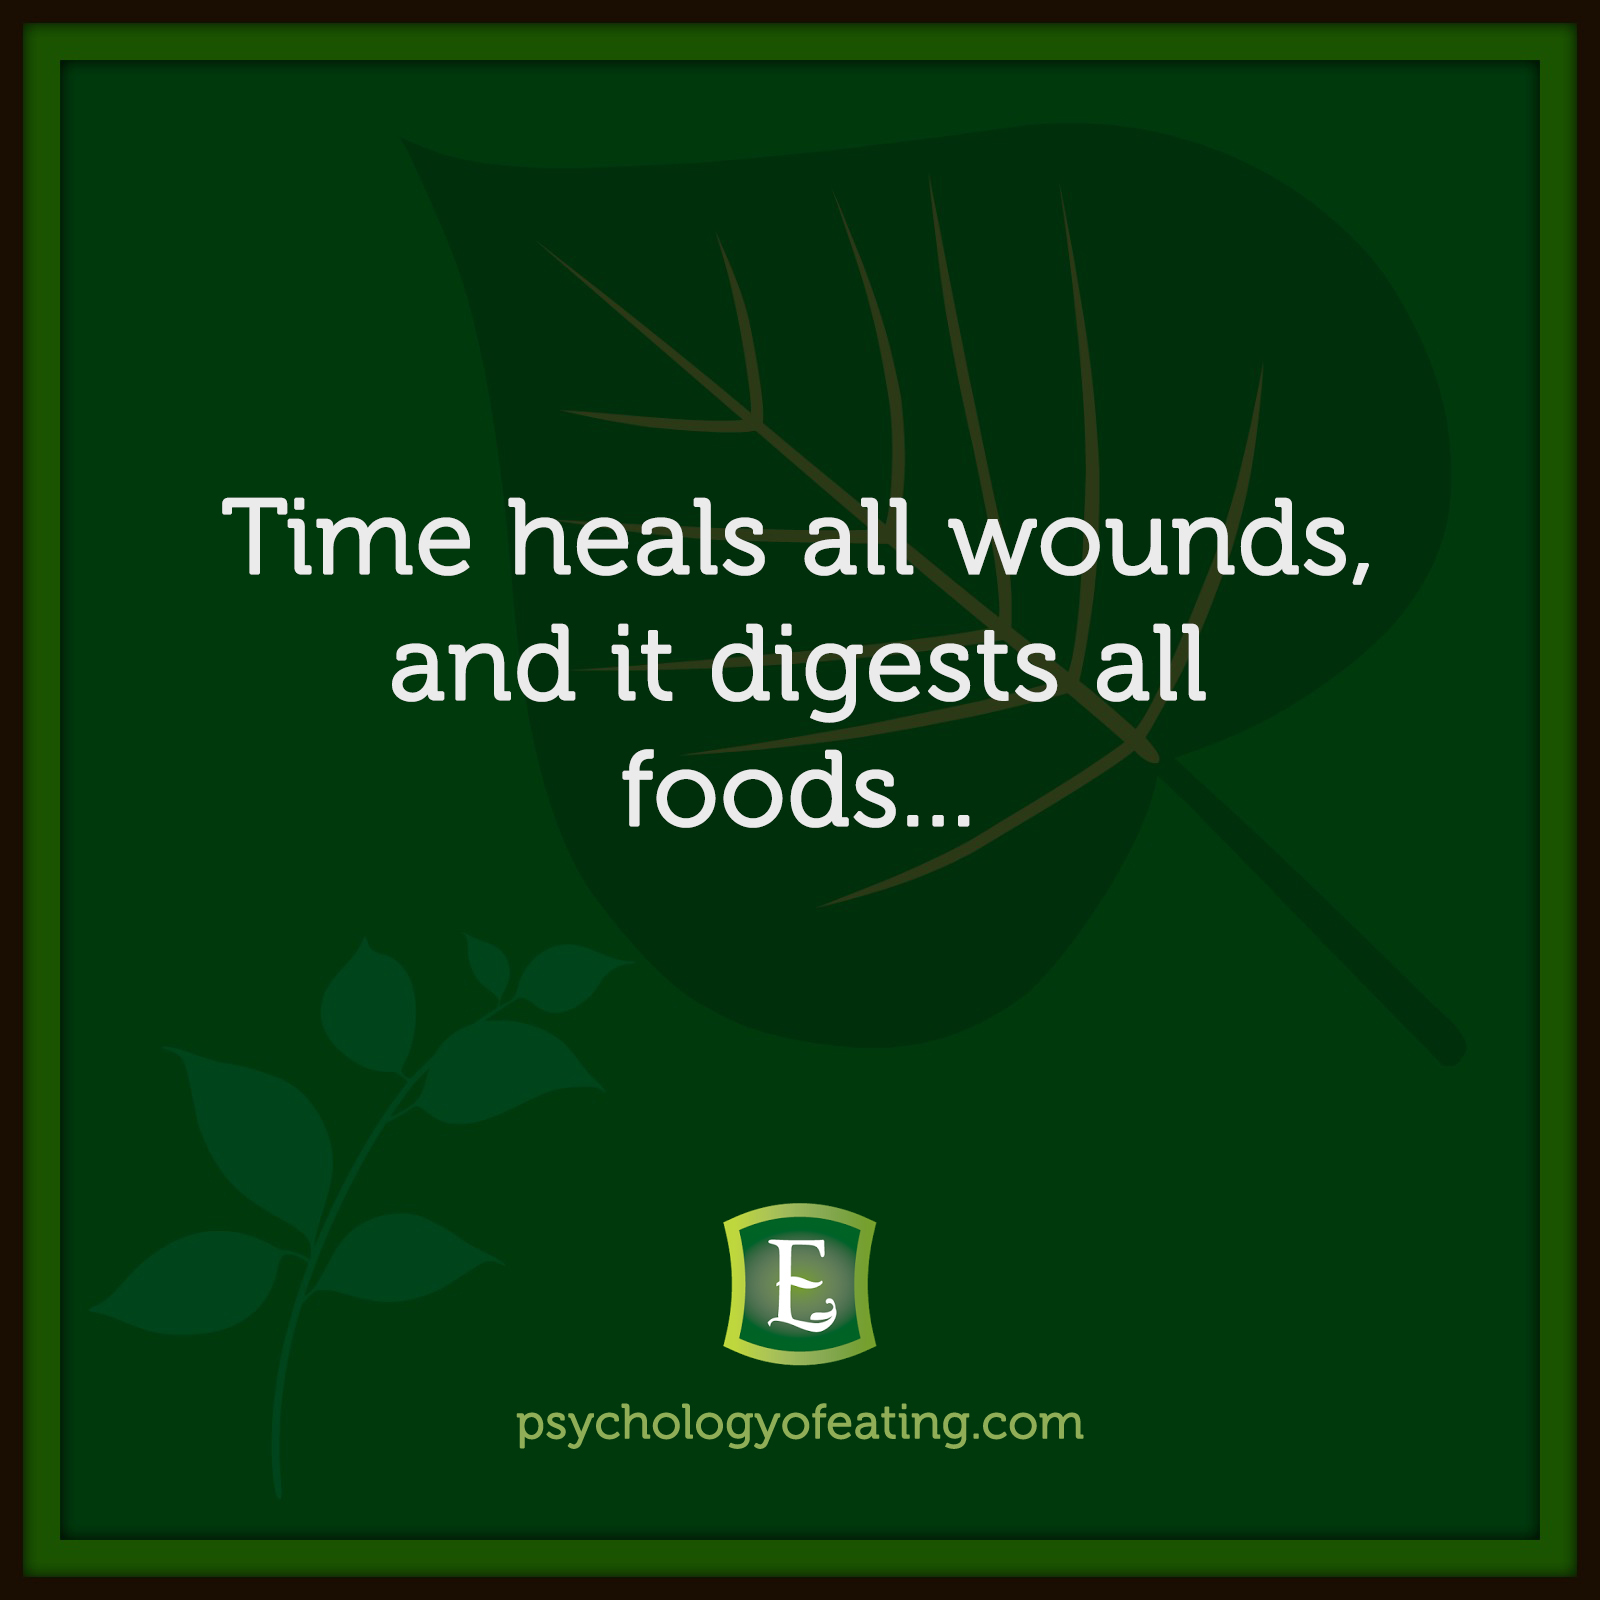 Time heals all wounds, and it digests all foods… #health #nutrition #eatingpsychology #IPE